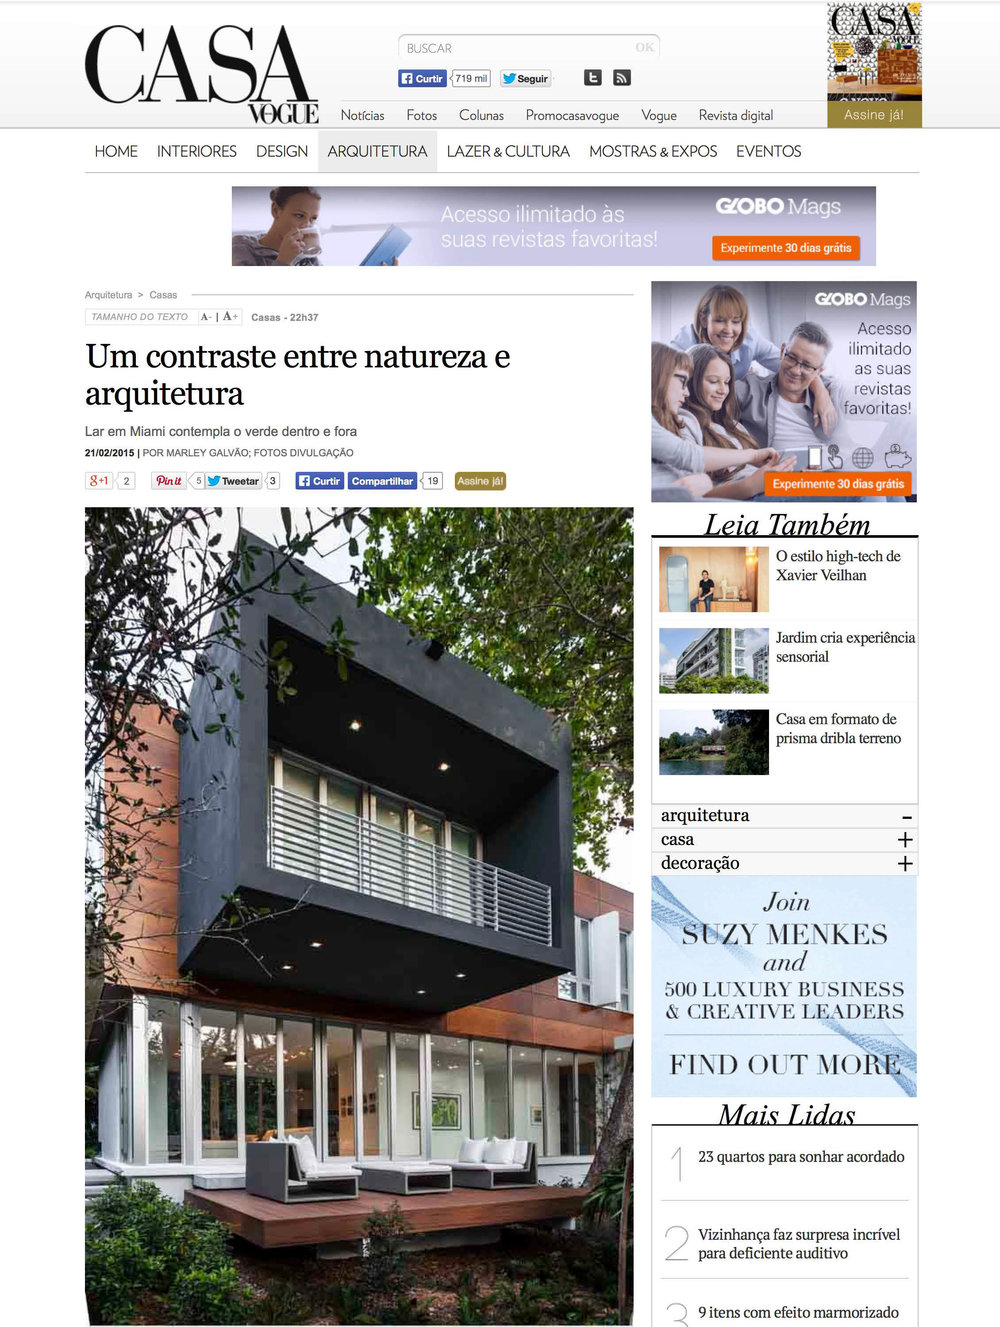 "Camp Biscayne house featured in Marley Galvao, ""Um contraste entre natureza e arquitetura,"" Casa Vogue (Brazil), February 2015       MORE >>"